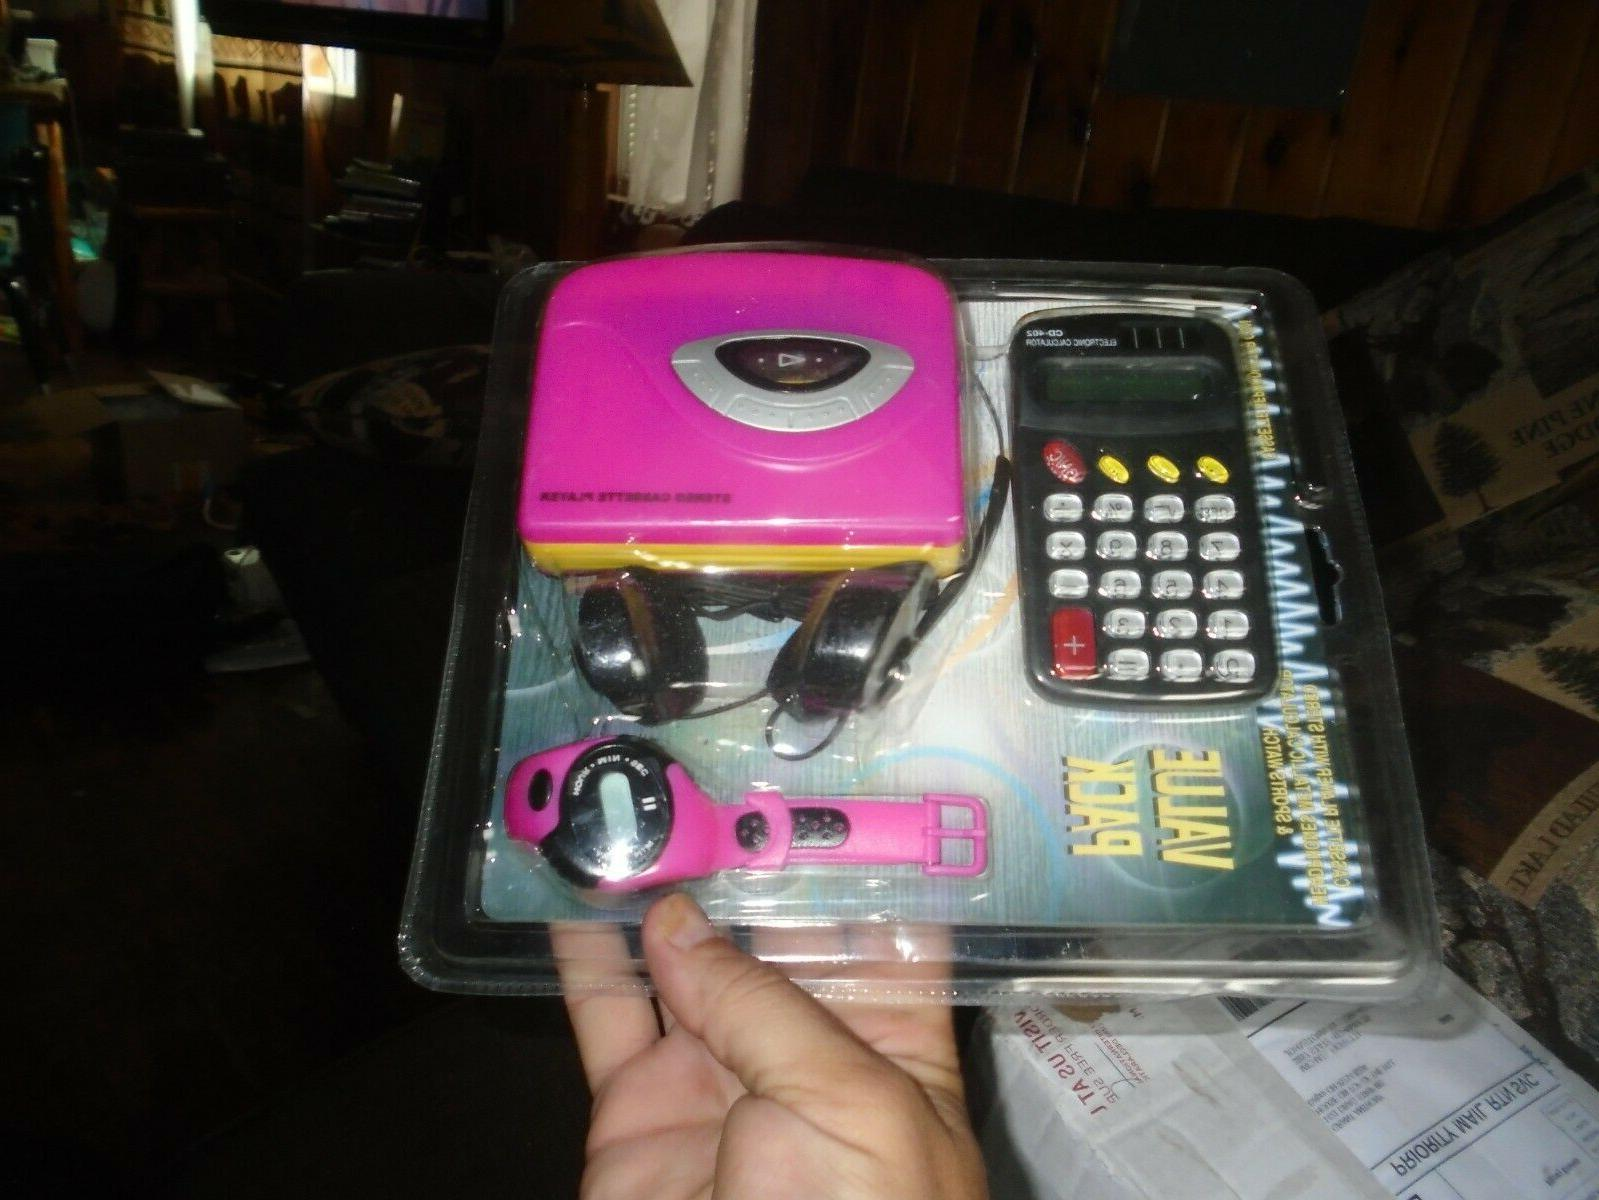 value pack cassette player watch and calculator